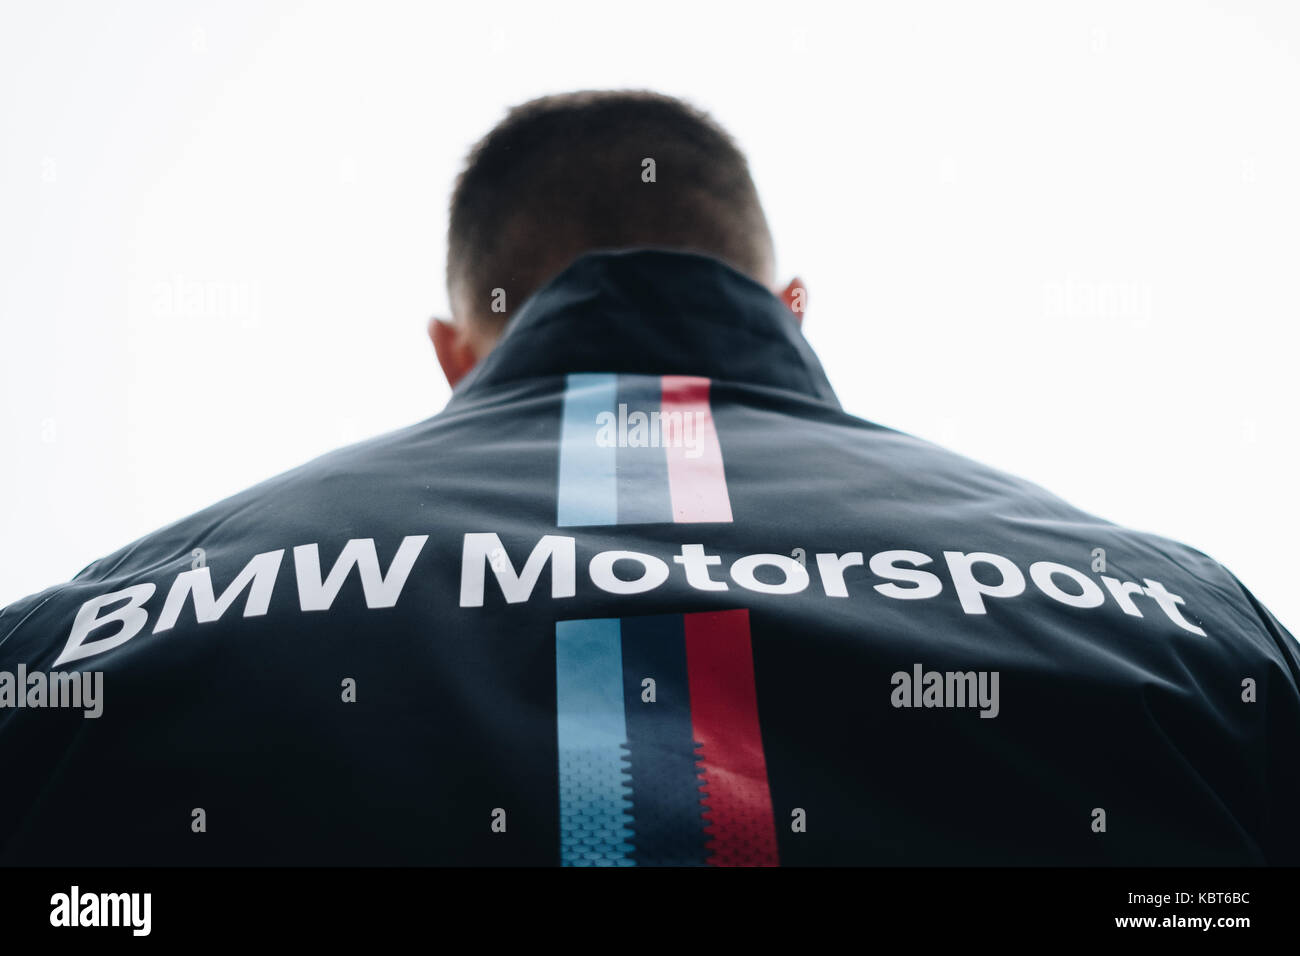 1st Bmw Stock Photos Amp 1st Bmw Stock Images Alamy